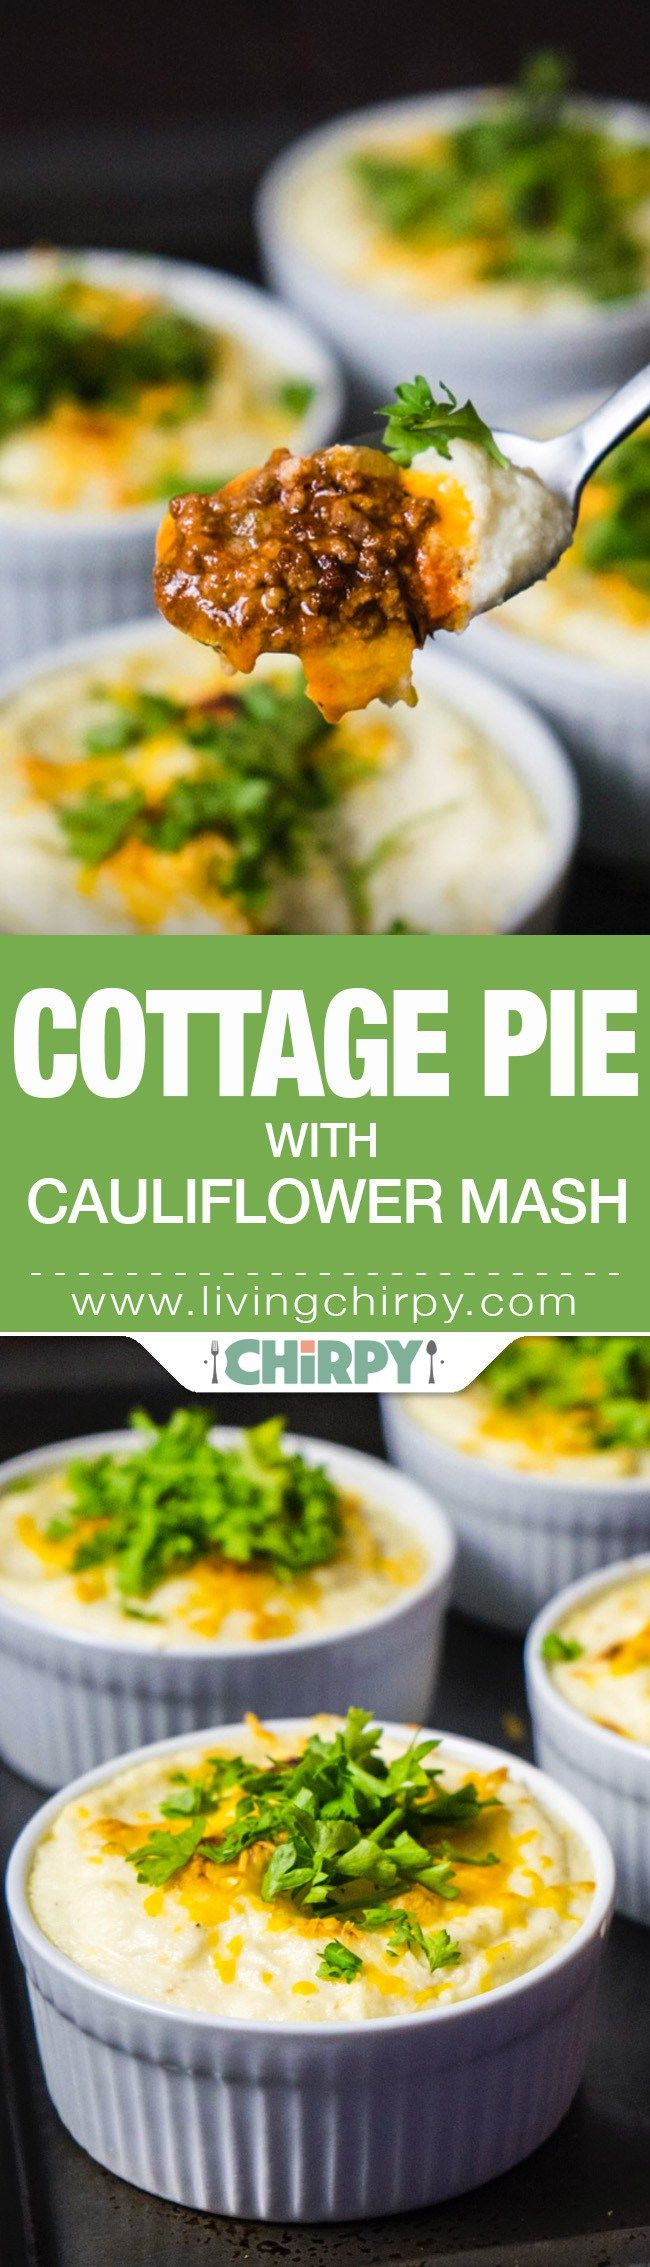 Low-Carb Cottage Pie with Cauliflower Mash - hearty ground beef topped with fluffy cauliflower mash and melted cheese. Dinner for a cold night.